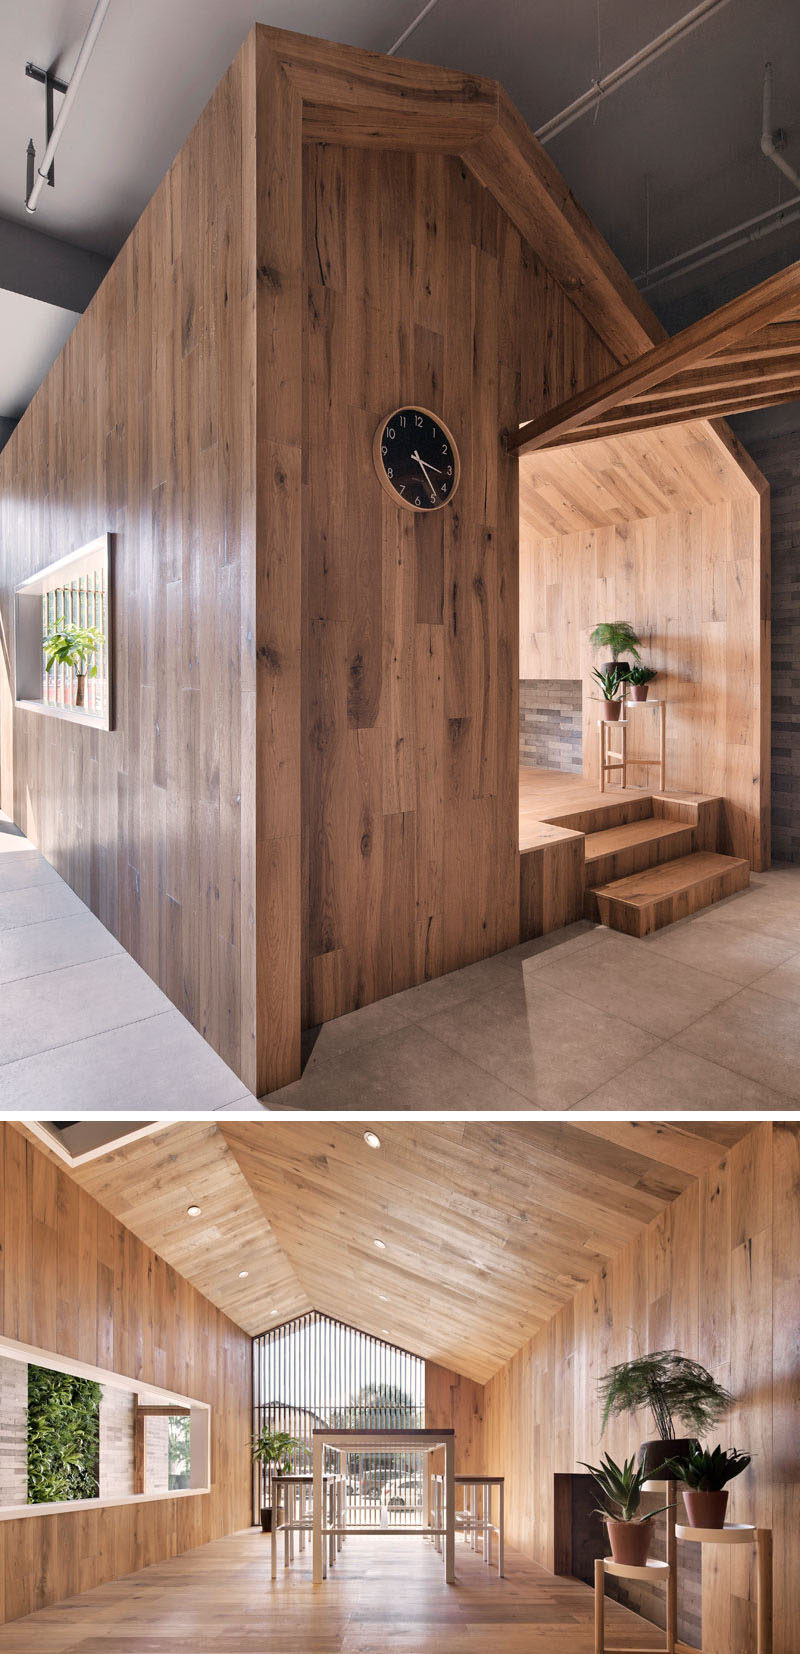 This modern hotel has a 'little house' that's made from wood and if furnished with a table and stools that look out onto street and the entrance of the hotel. #ModernHotel #HotelDesign